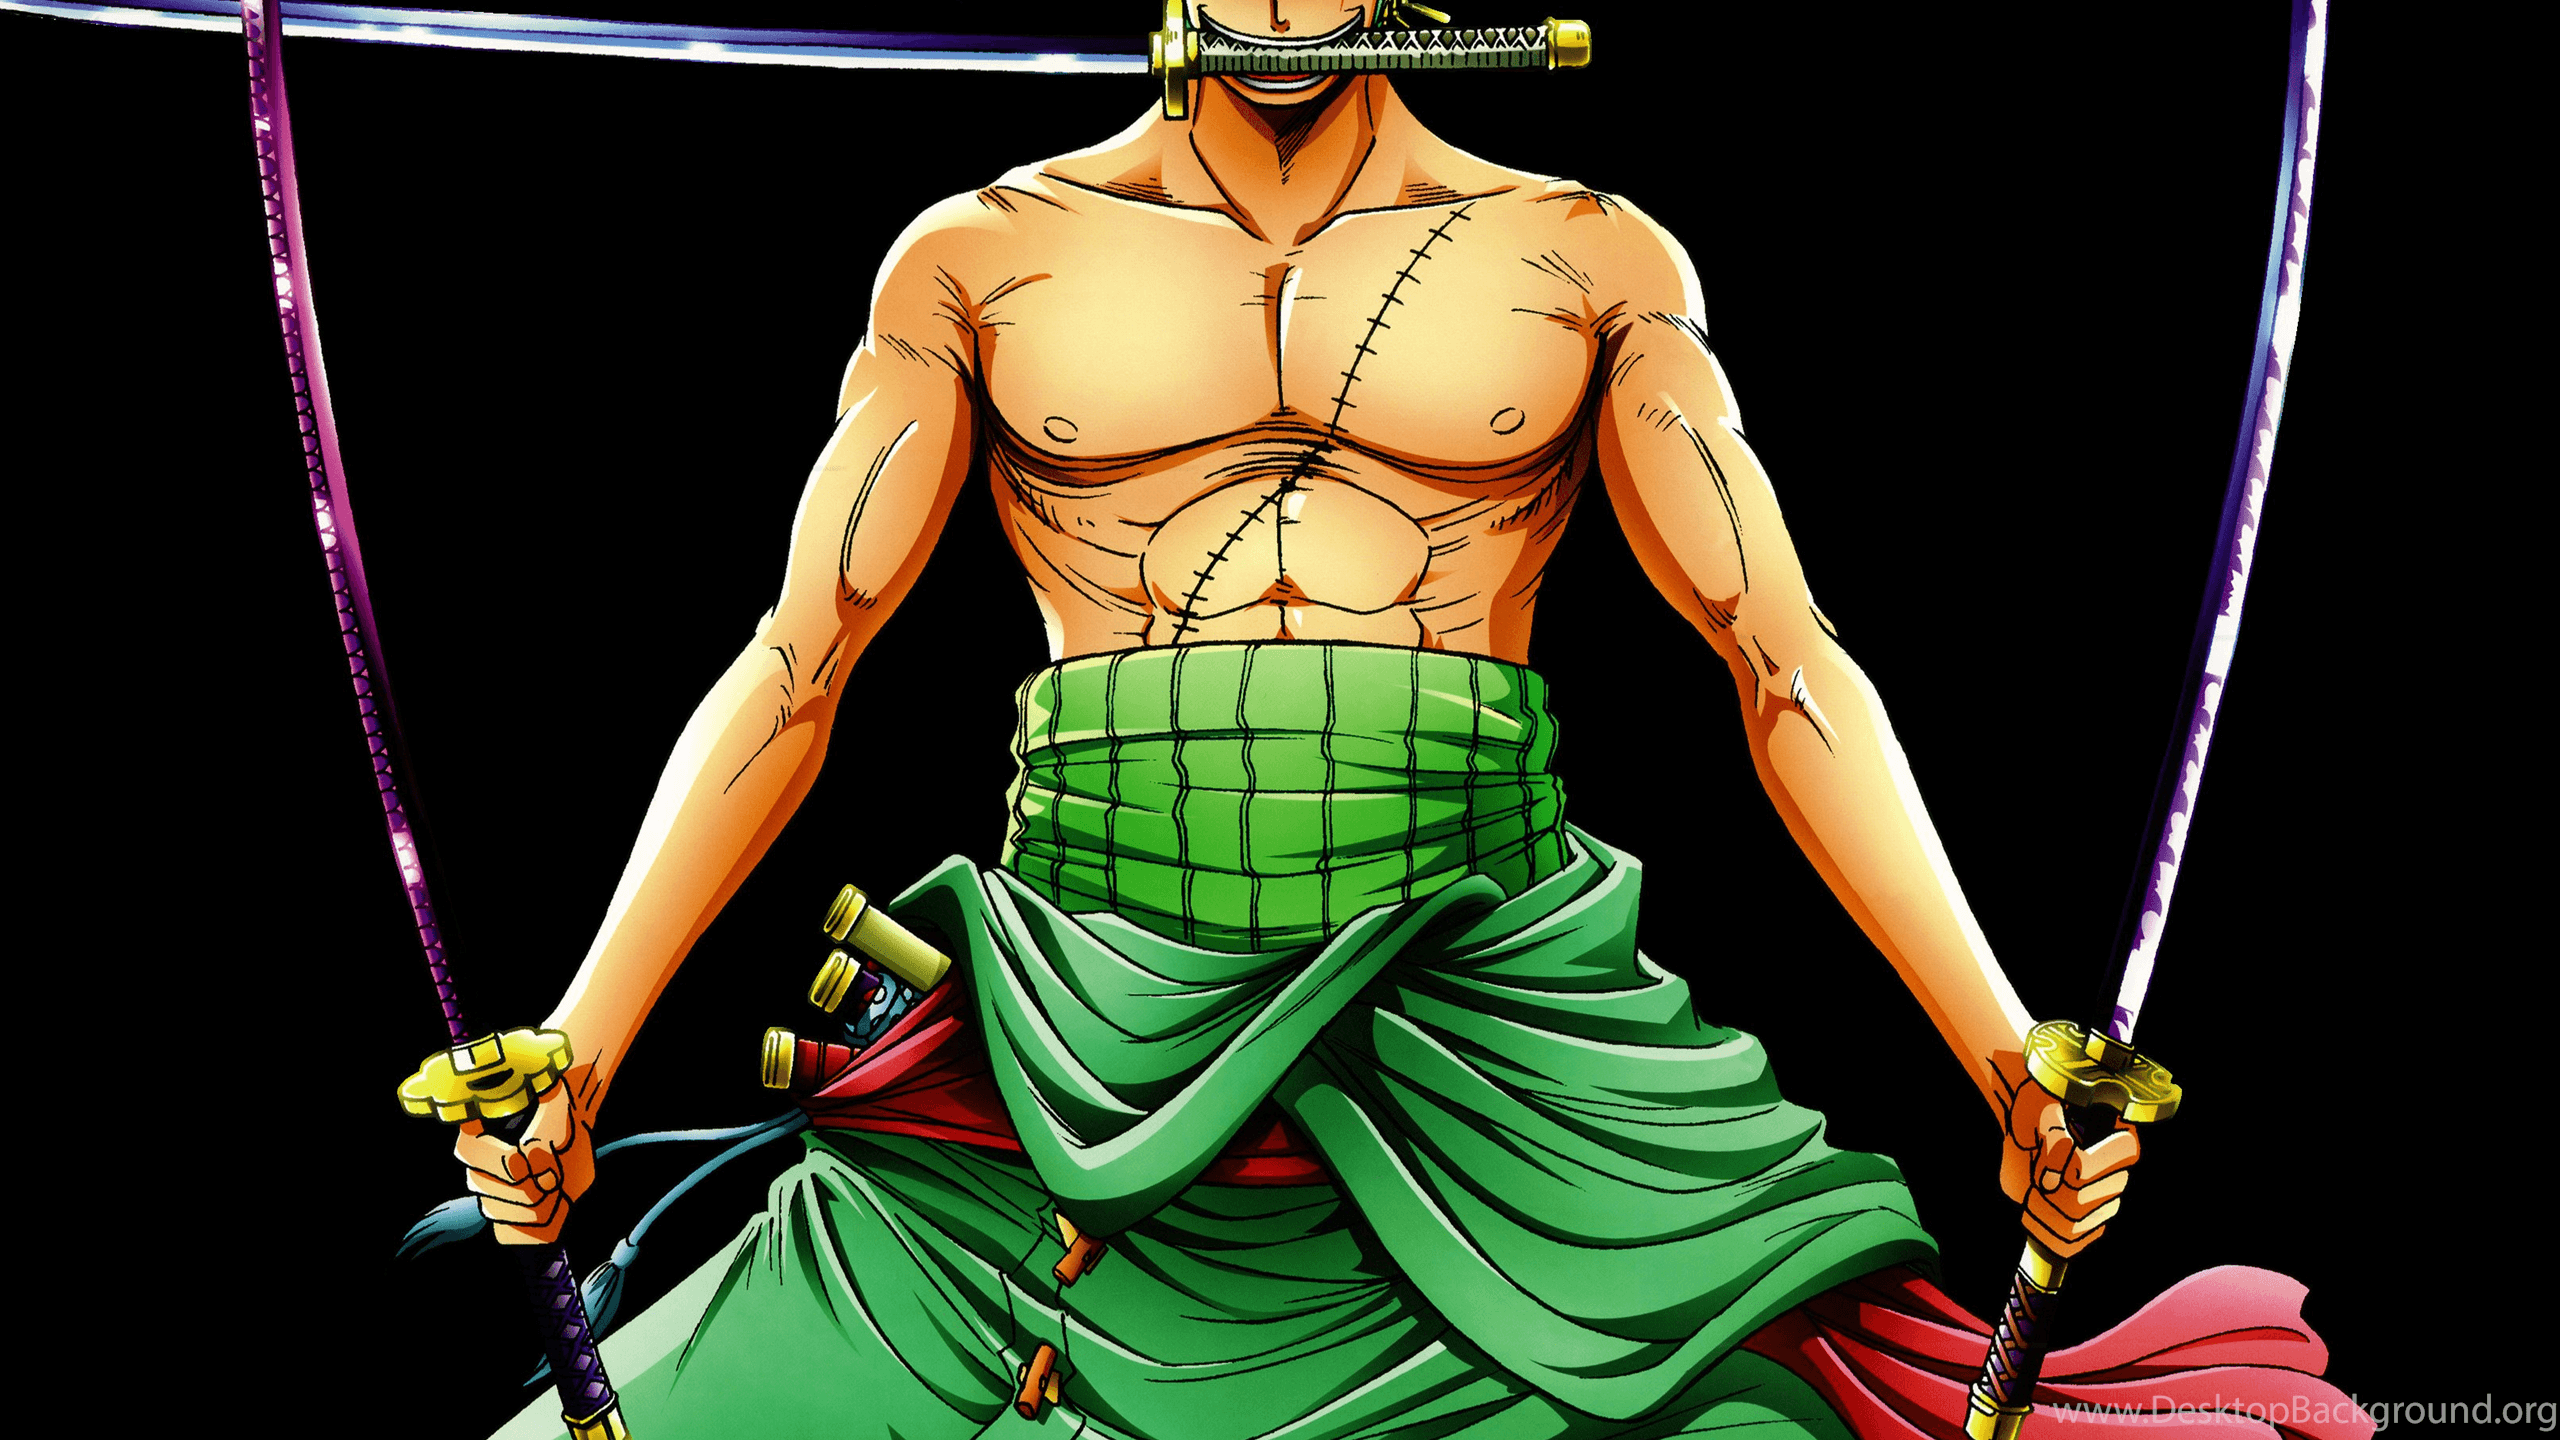 One Piece Roronoa Zoro Hd Wallpaper Roronoa Zoro Hd Wallpapers Posted By Ryan Sellers